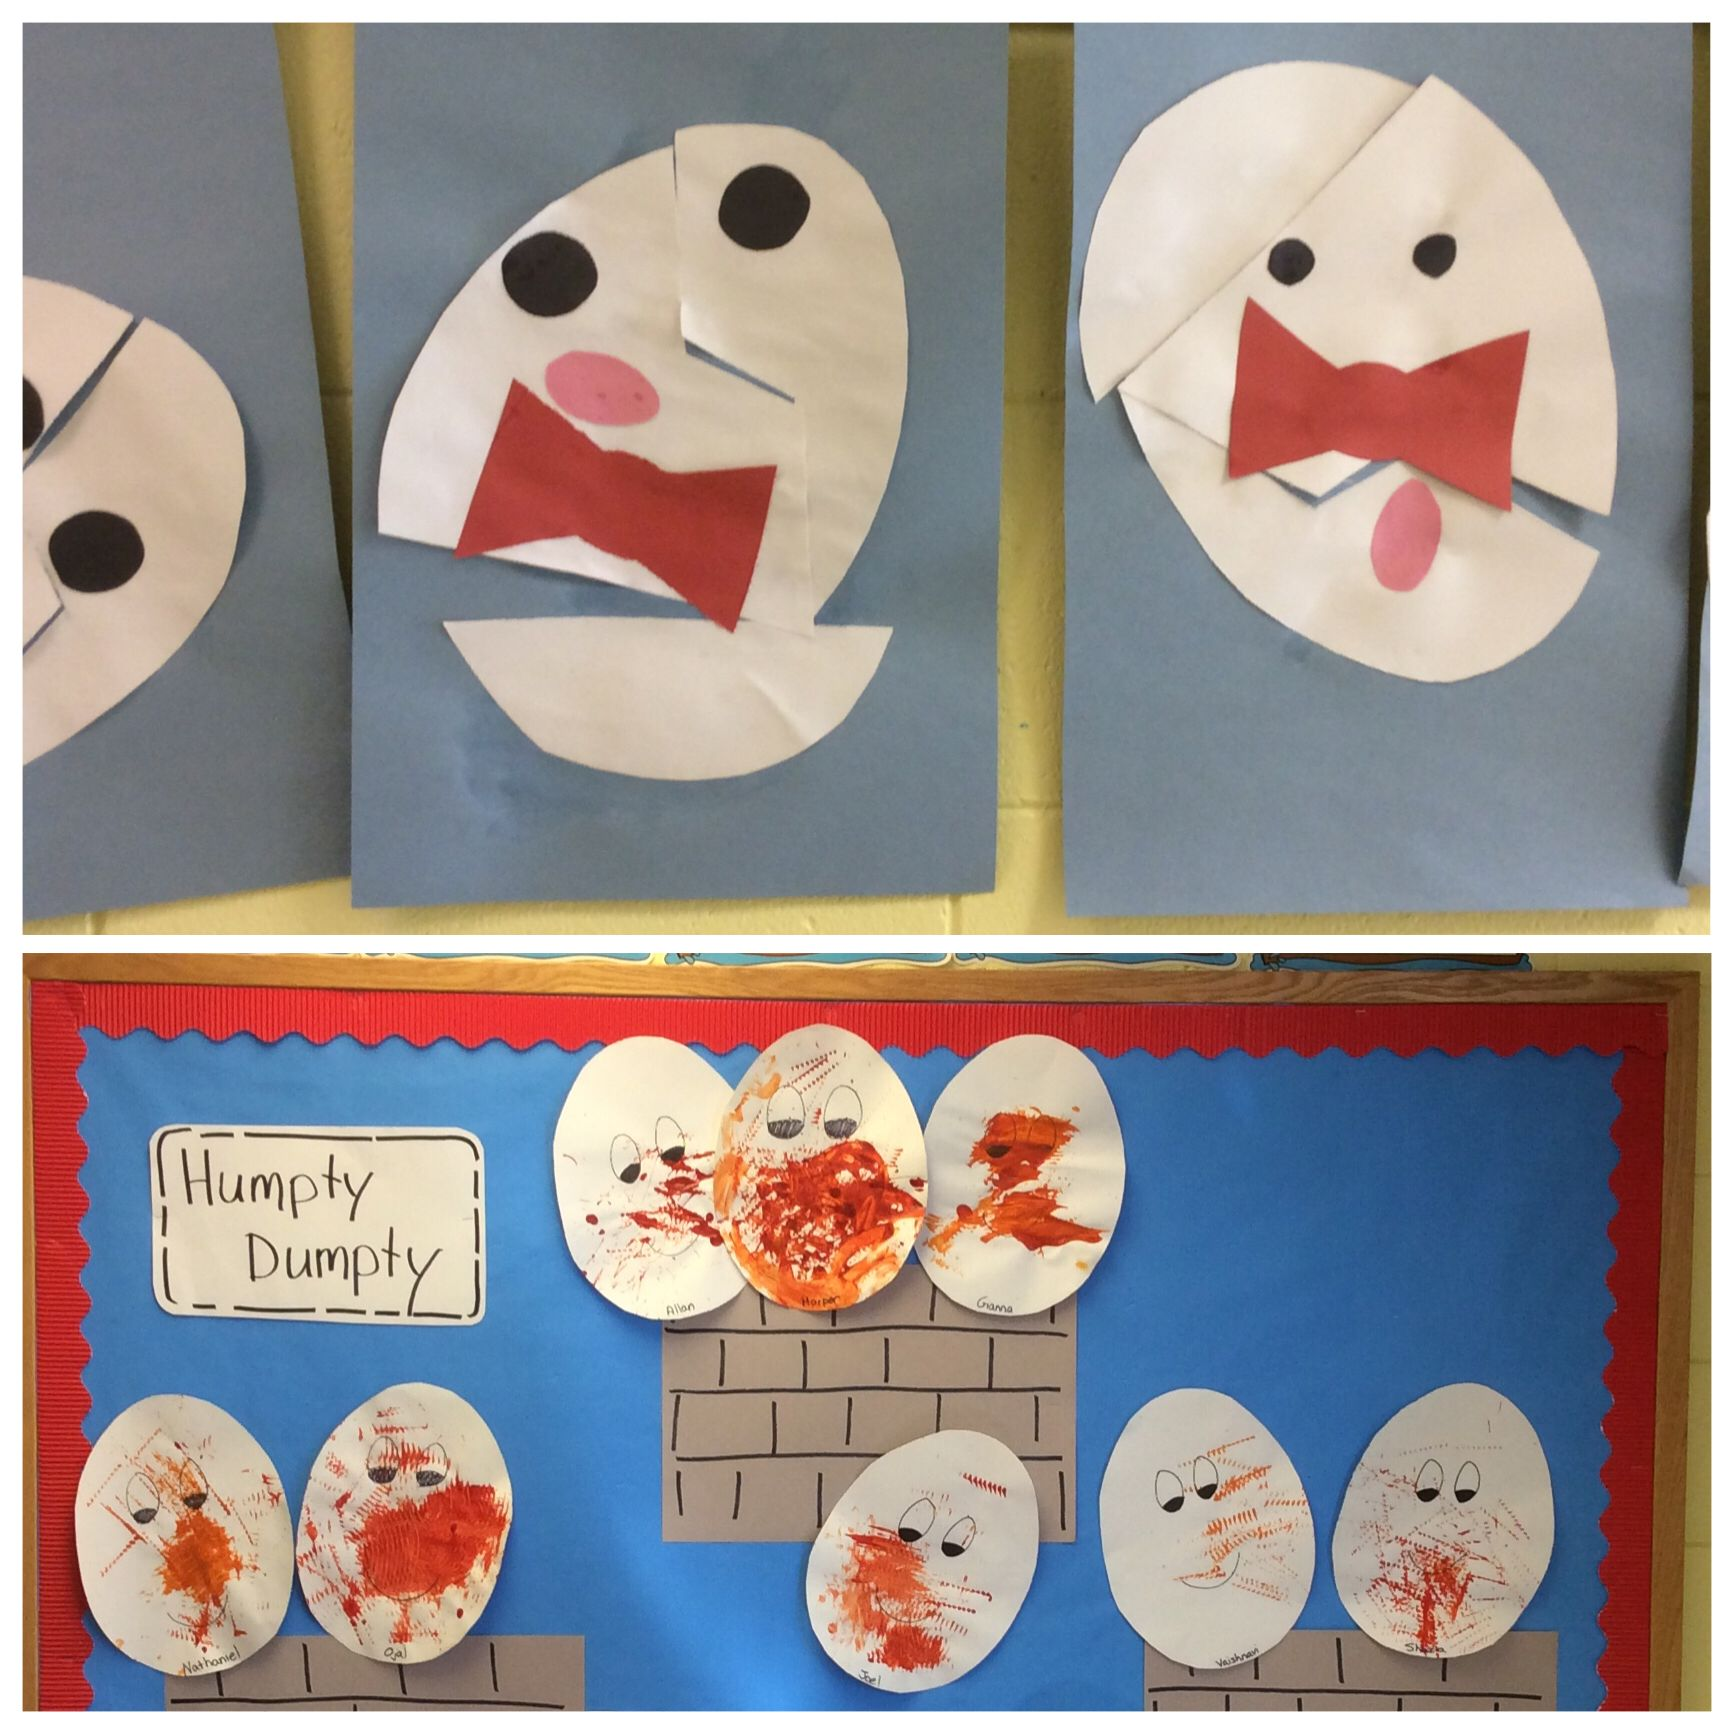 Humpty Dumpty Art One In A 3 Year Old Class And The Other